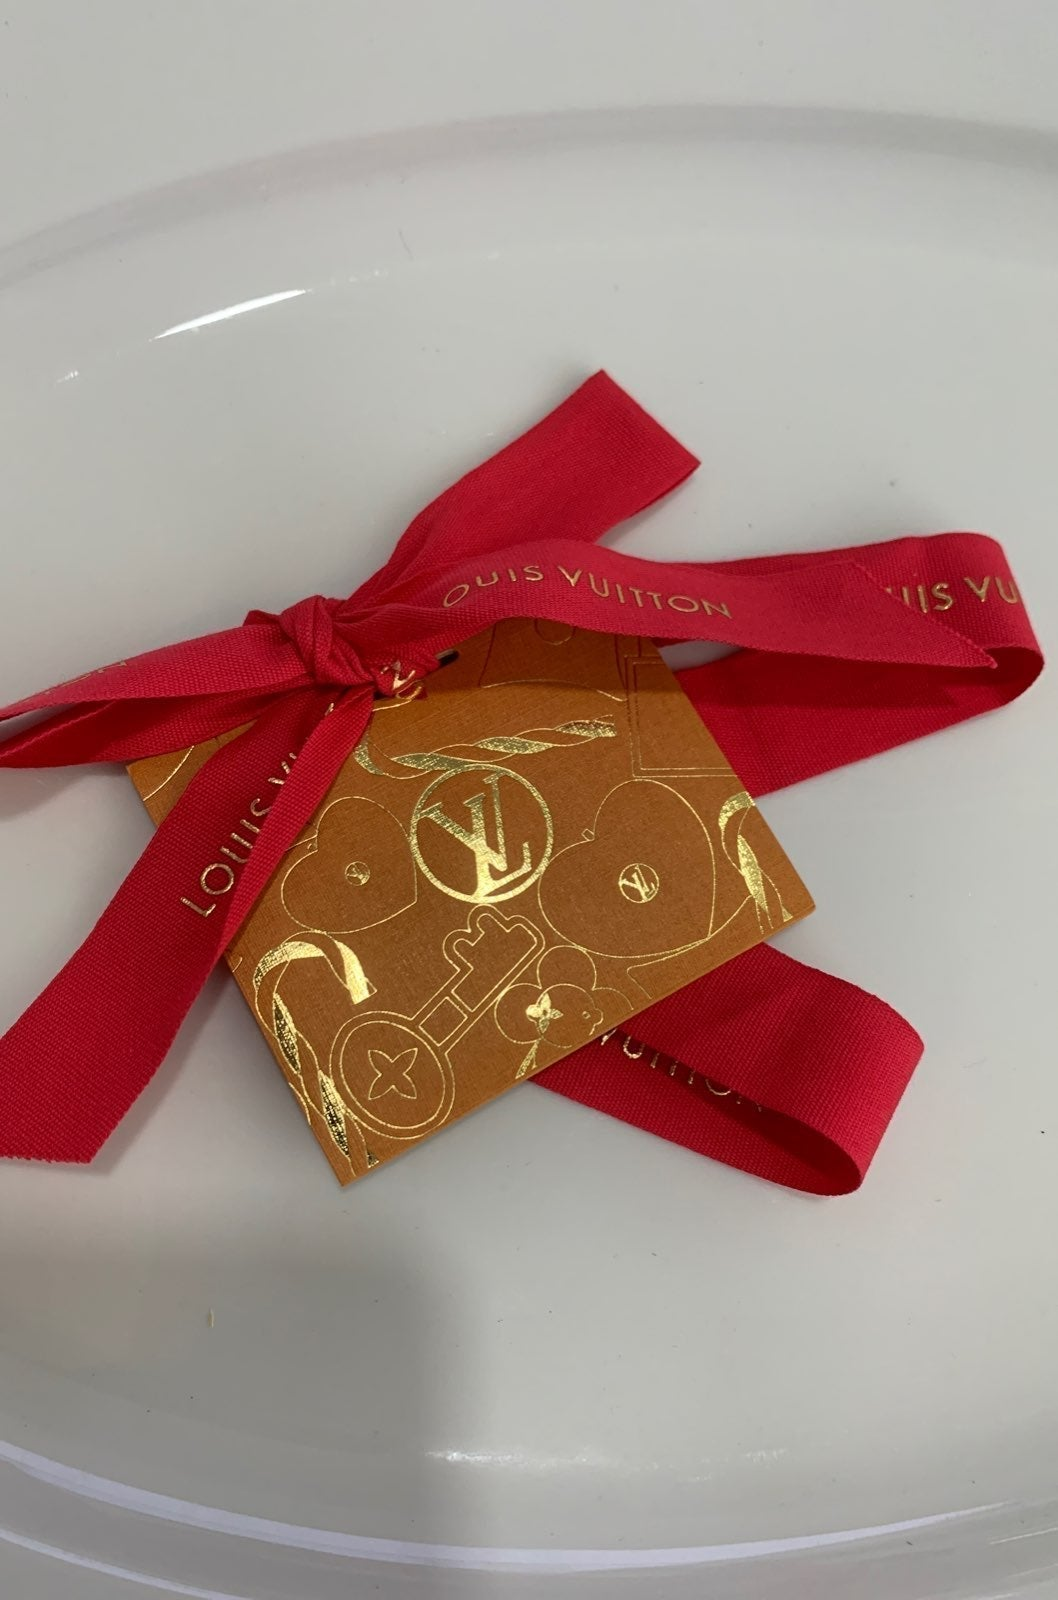 Louis vuitton holiday gift tag ribbon